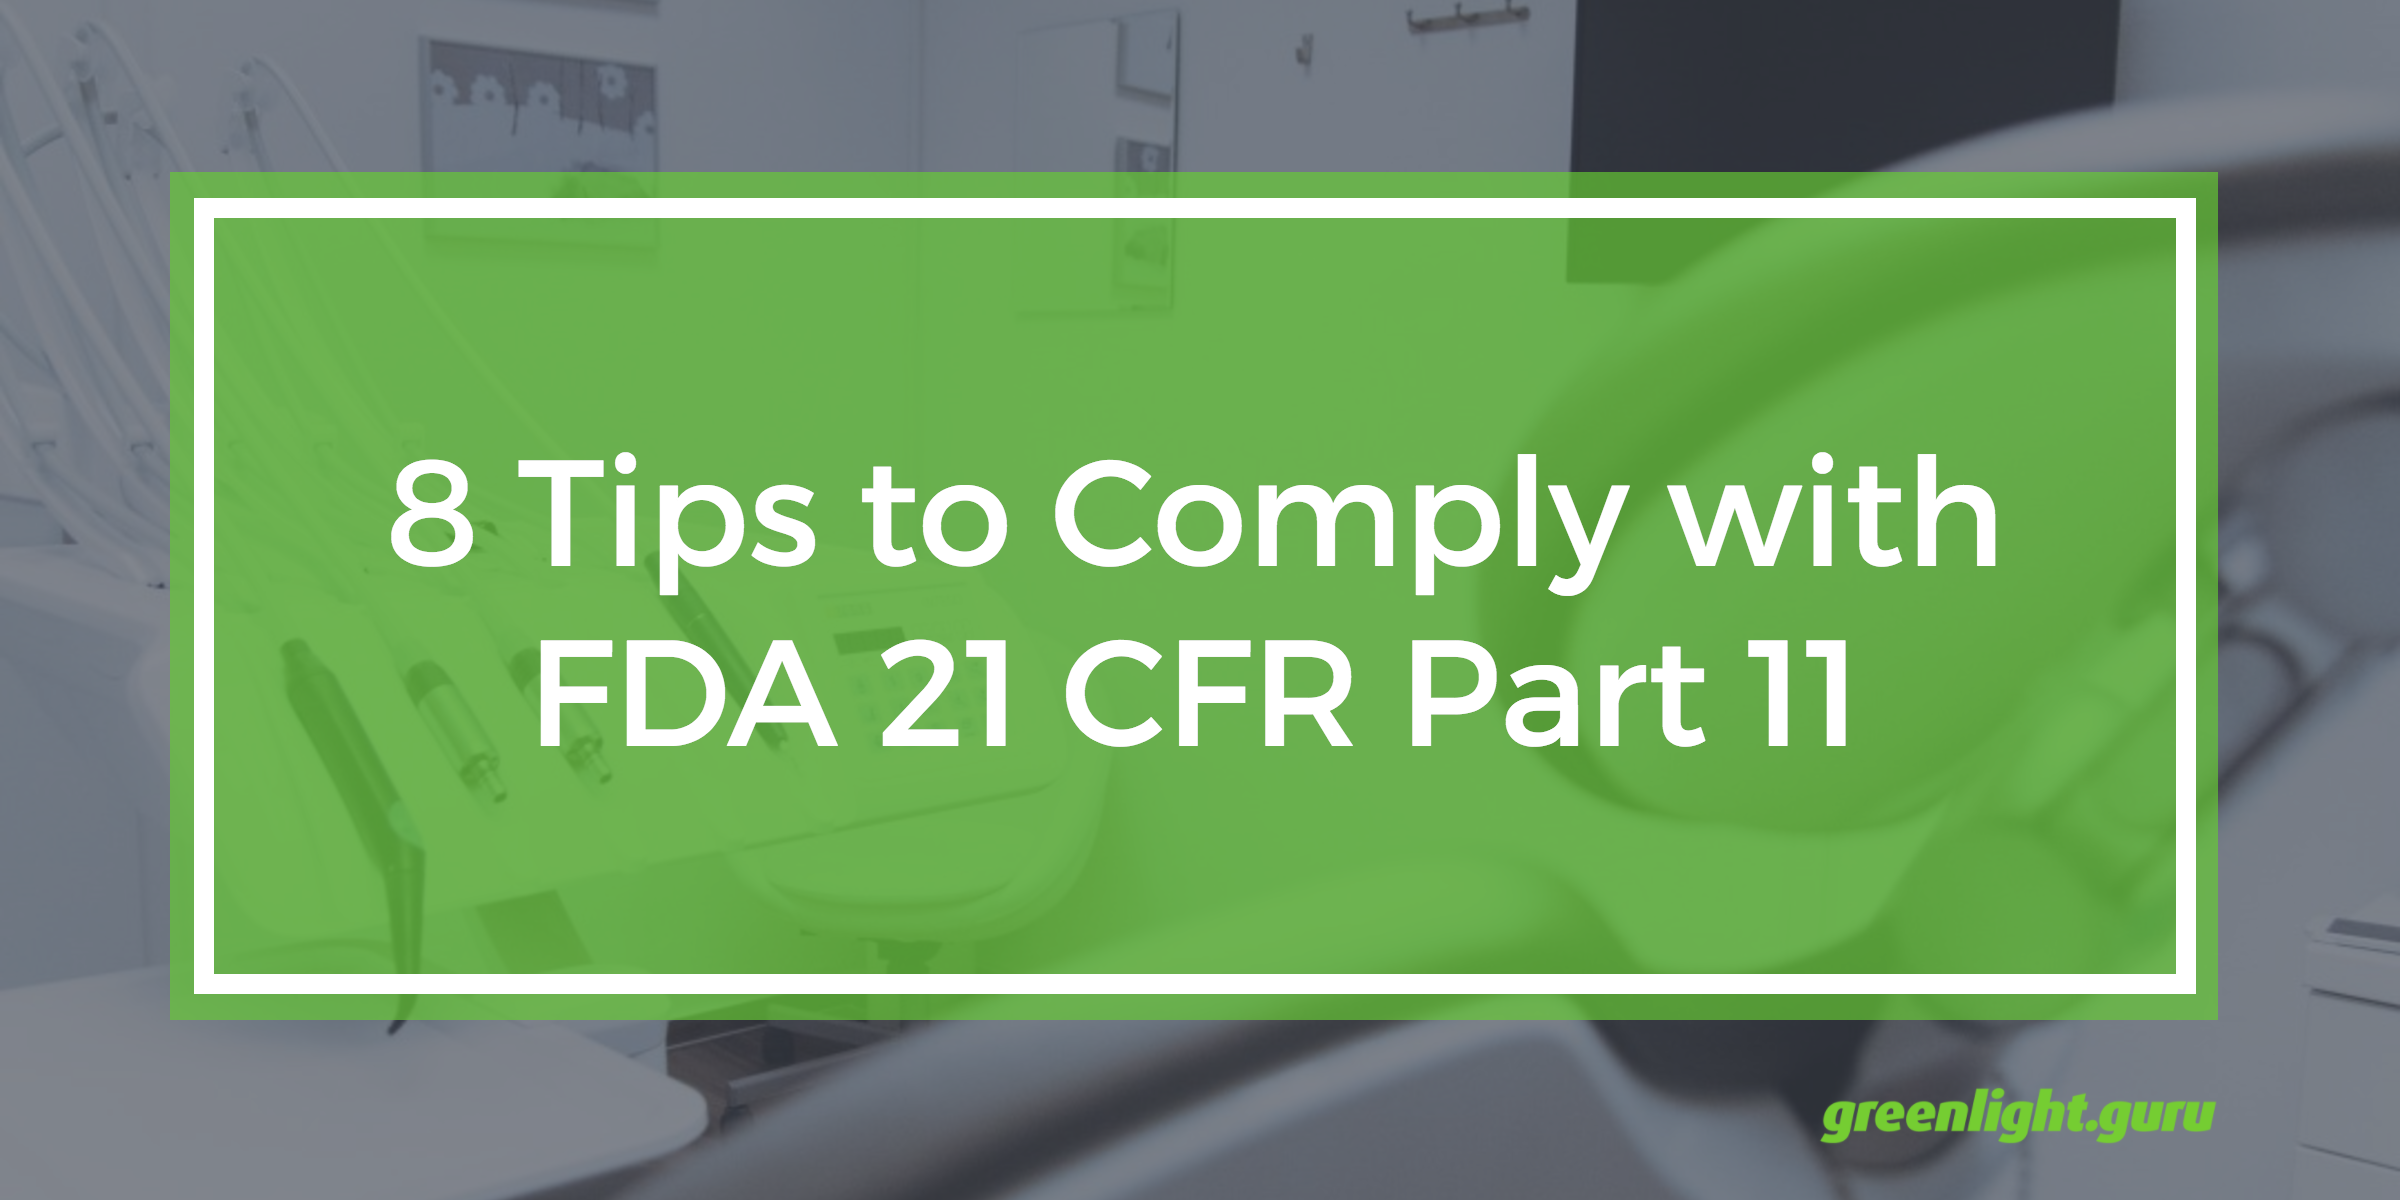 tips_to_comply_with_fda_21_cfr_part_11.png